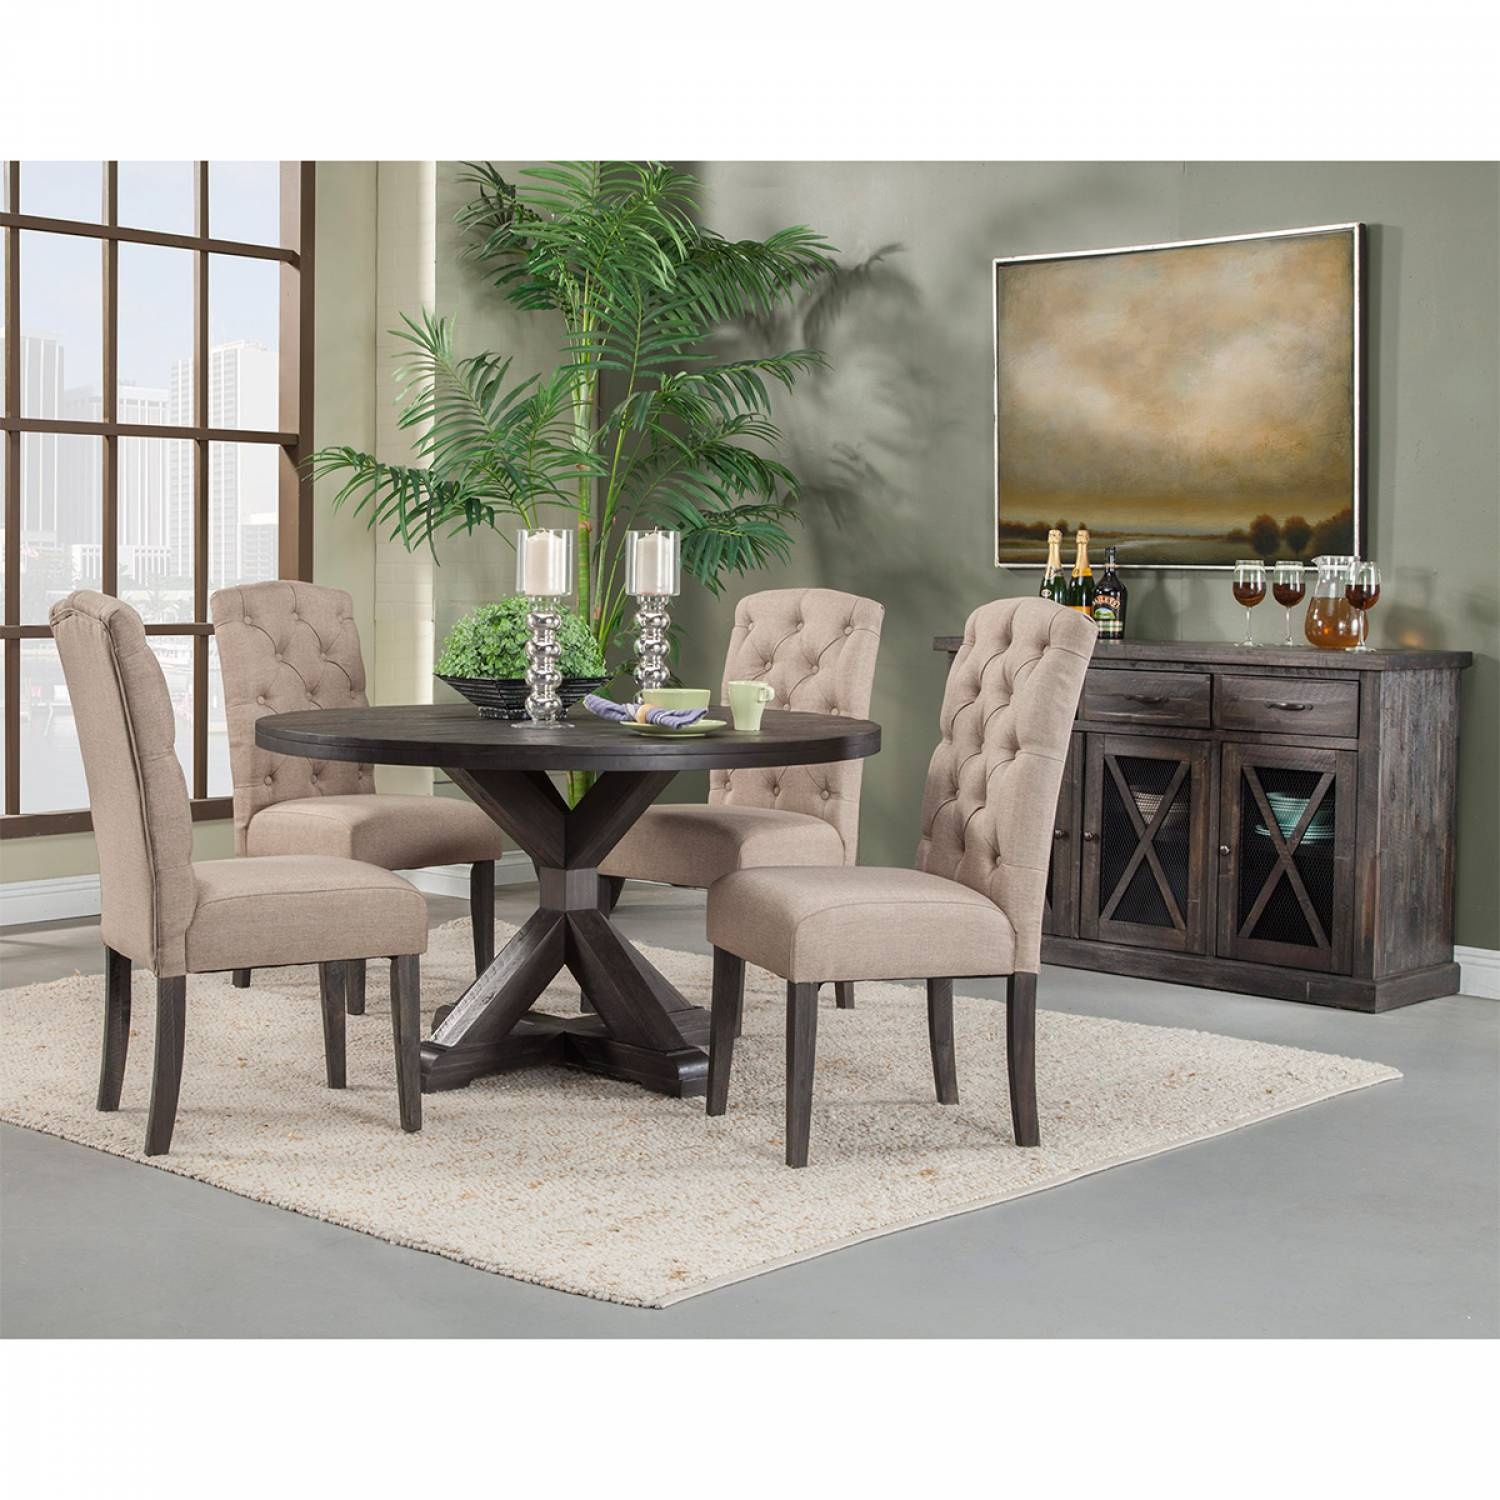 1468 Alpine Furniture 1468 25 Newberry 7PC SETS Round Dining Table + 4  Chairs